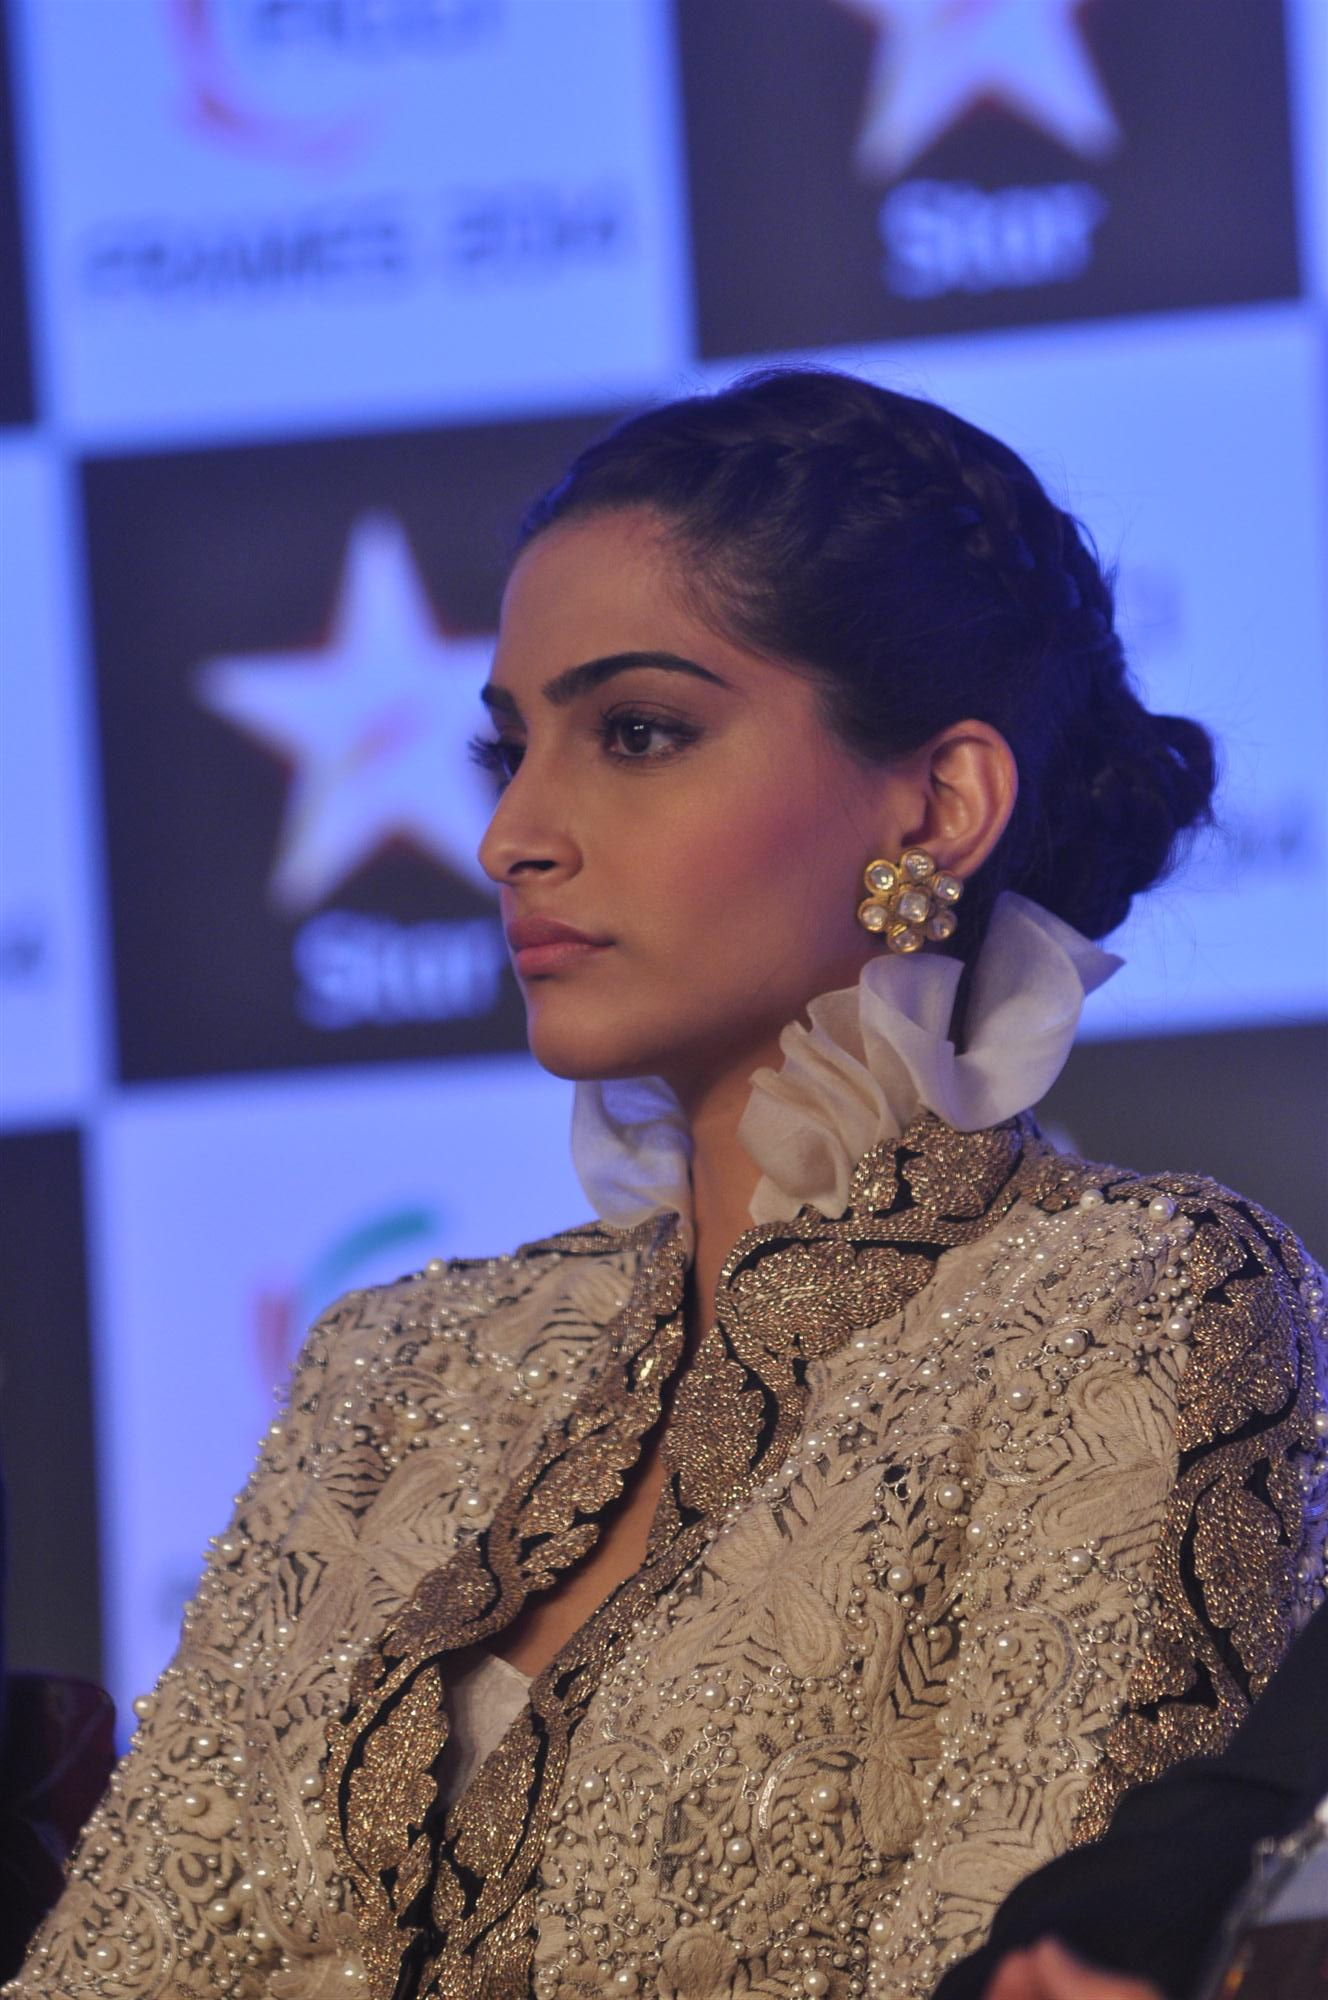 Sonam-Kapoor in poki earrings